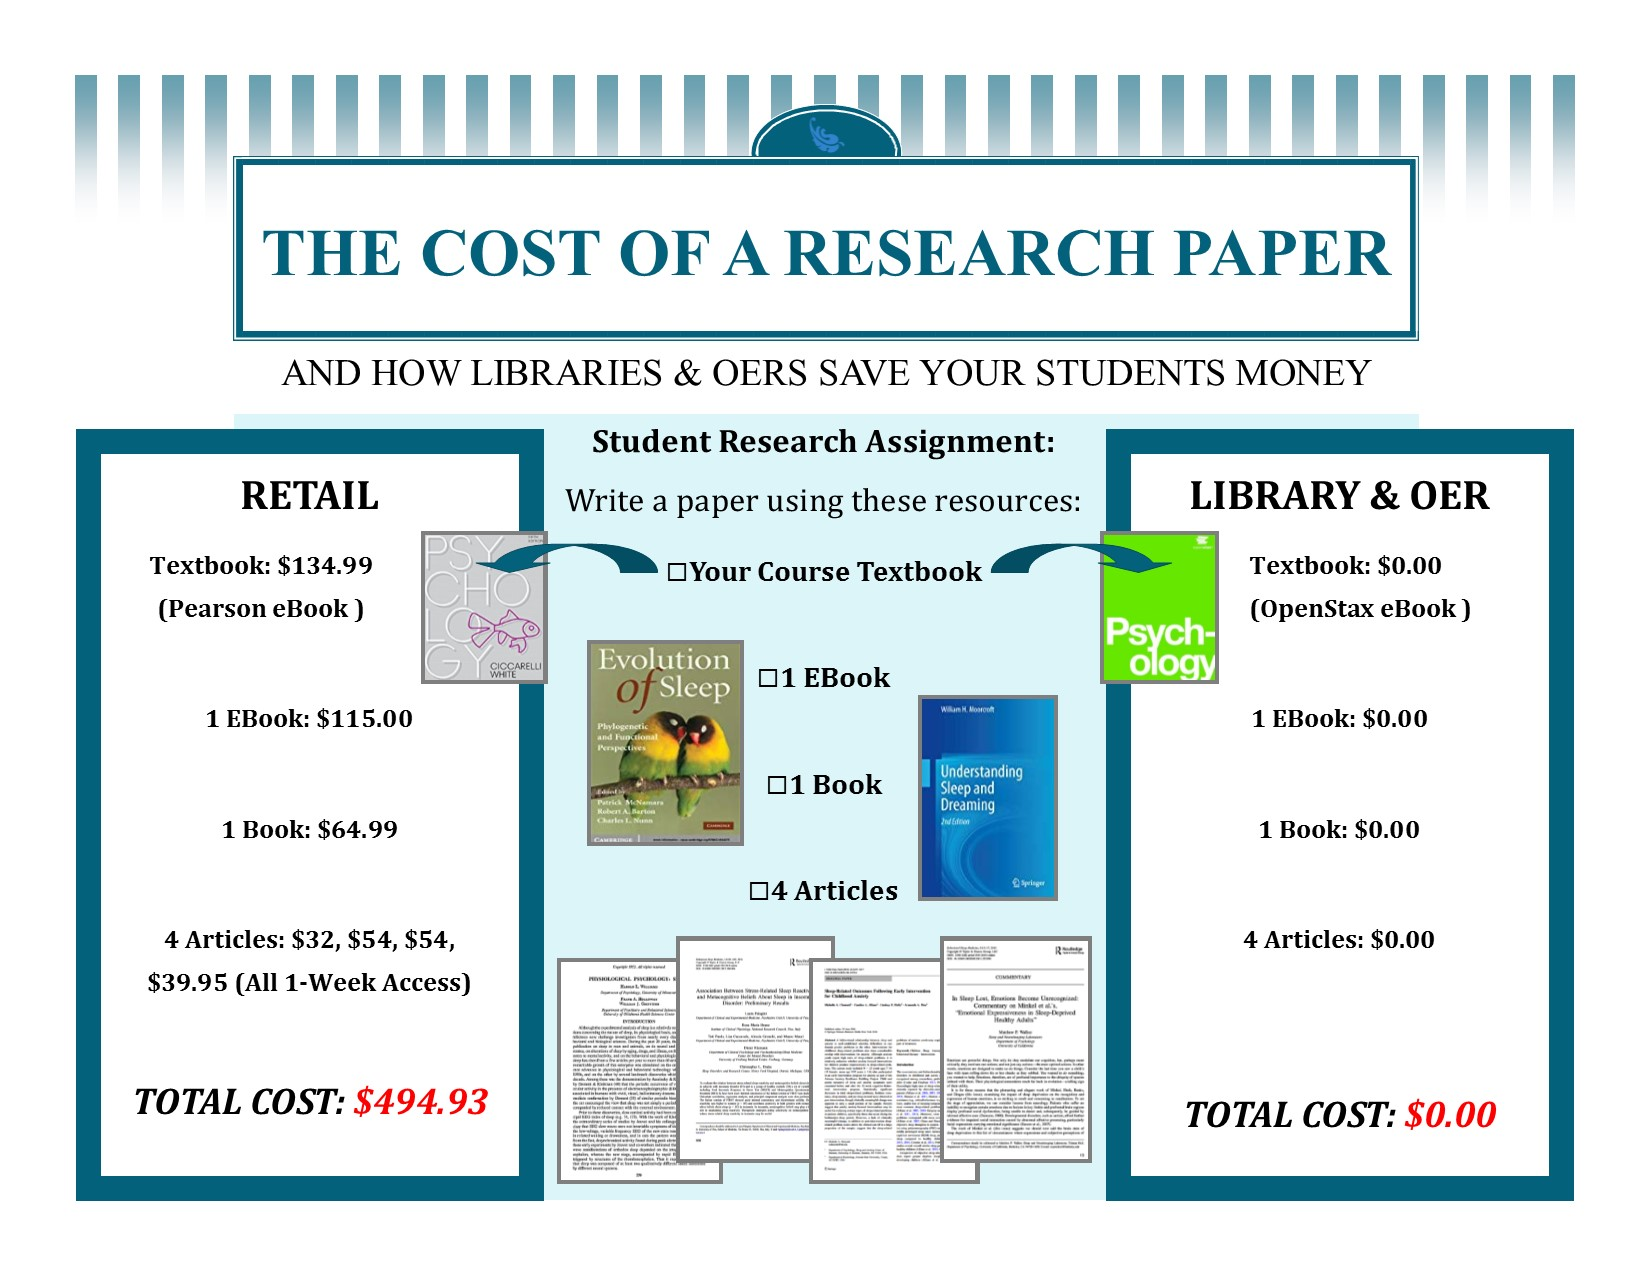 Cost of a Research Paper